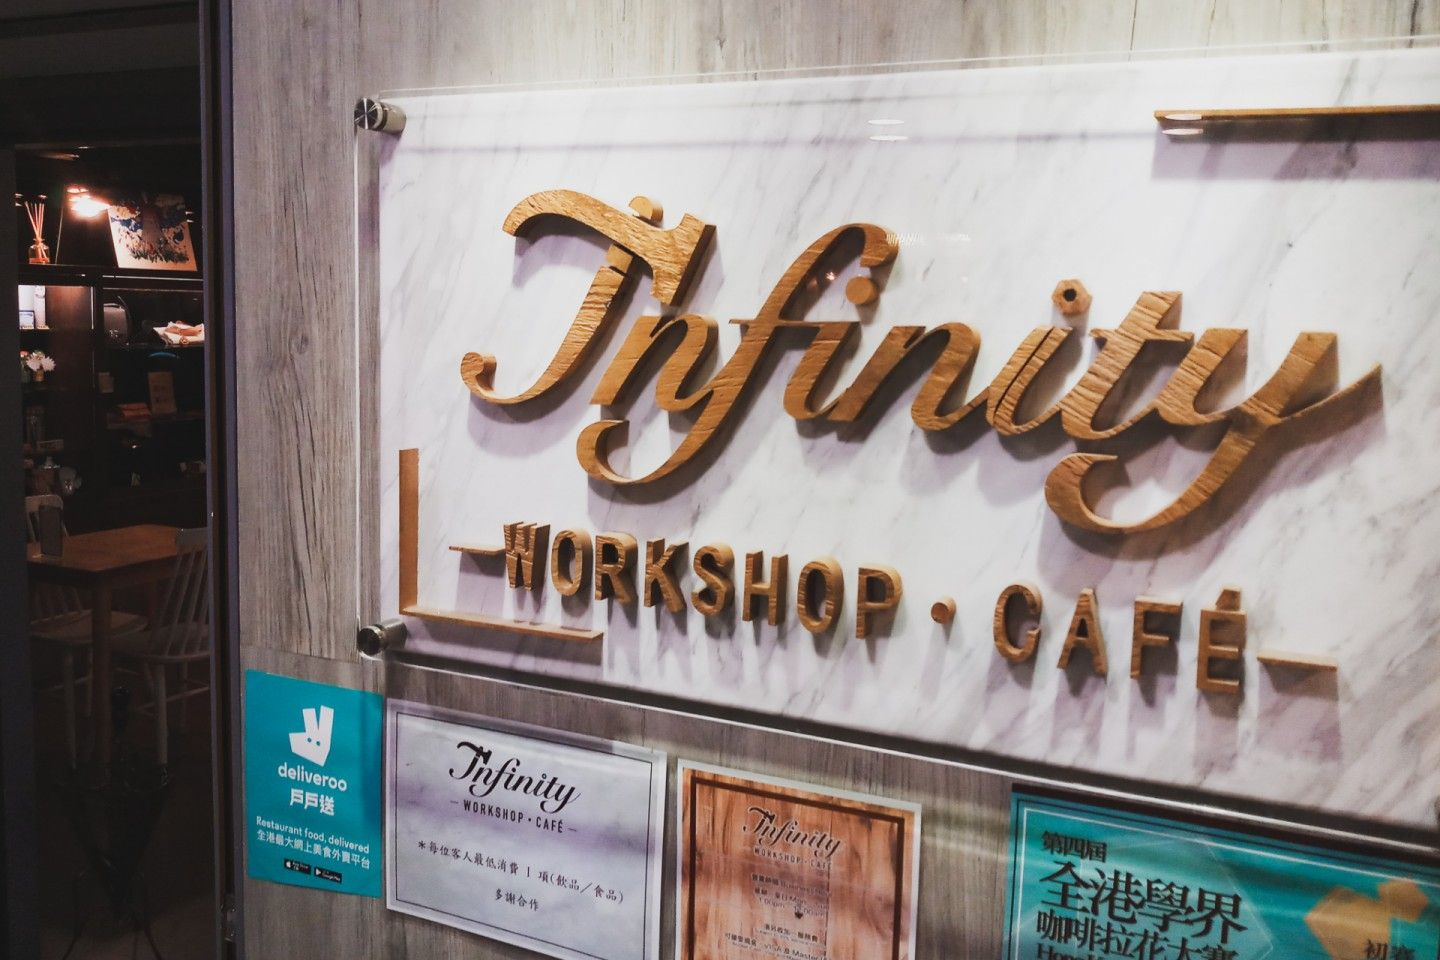 Infinity Workshop Cafe